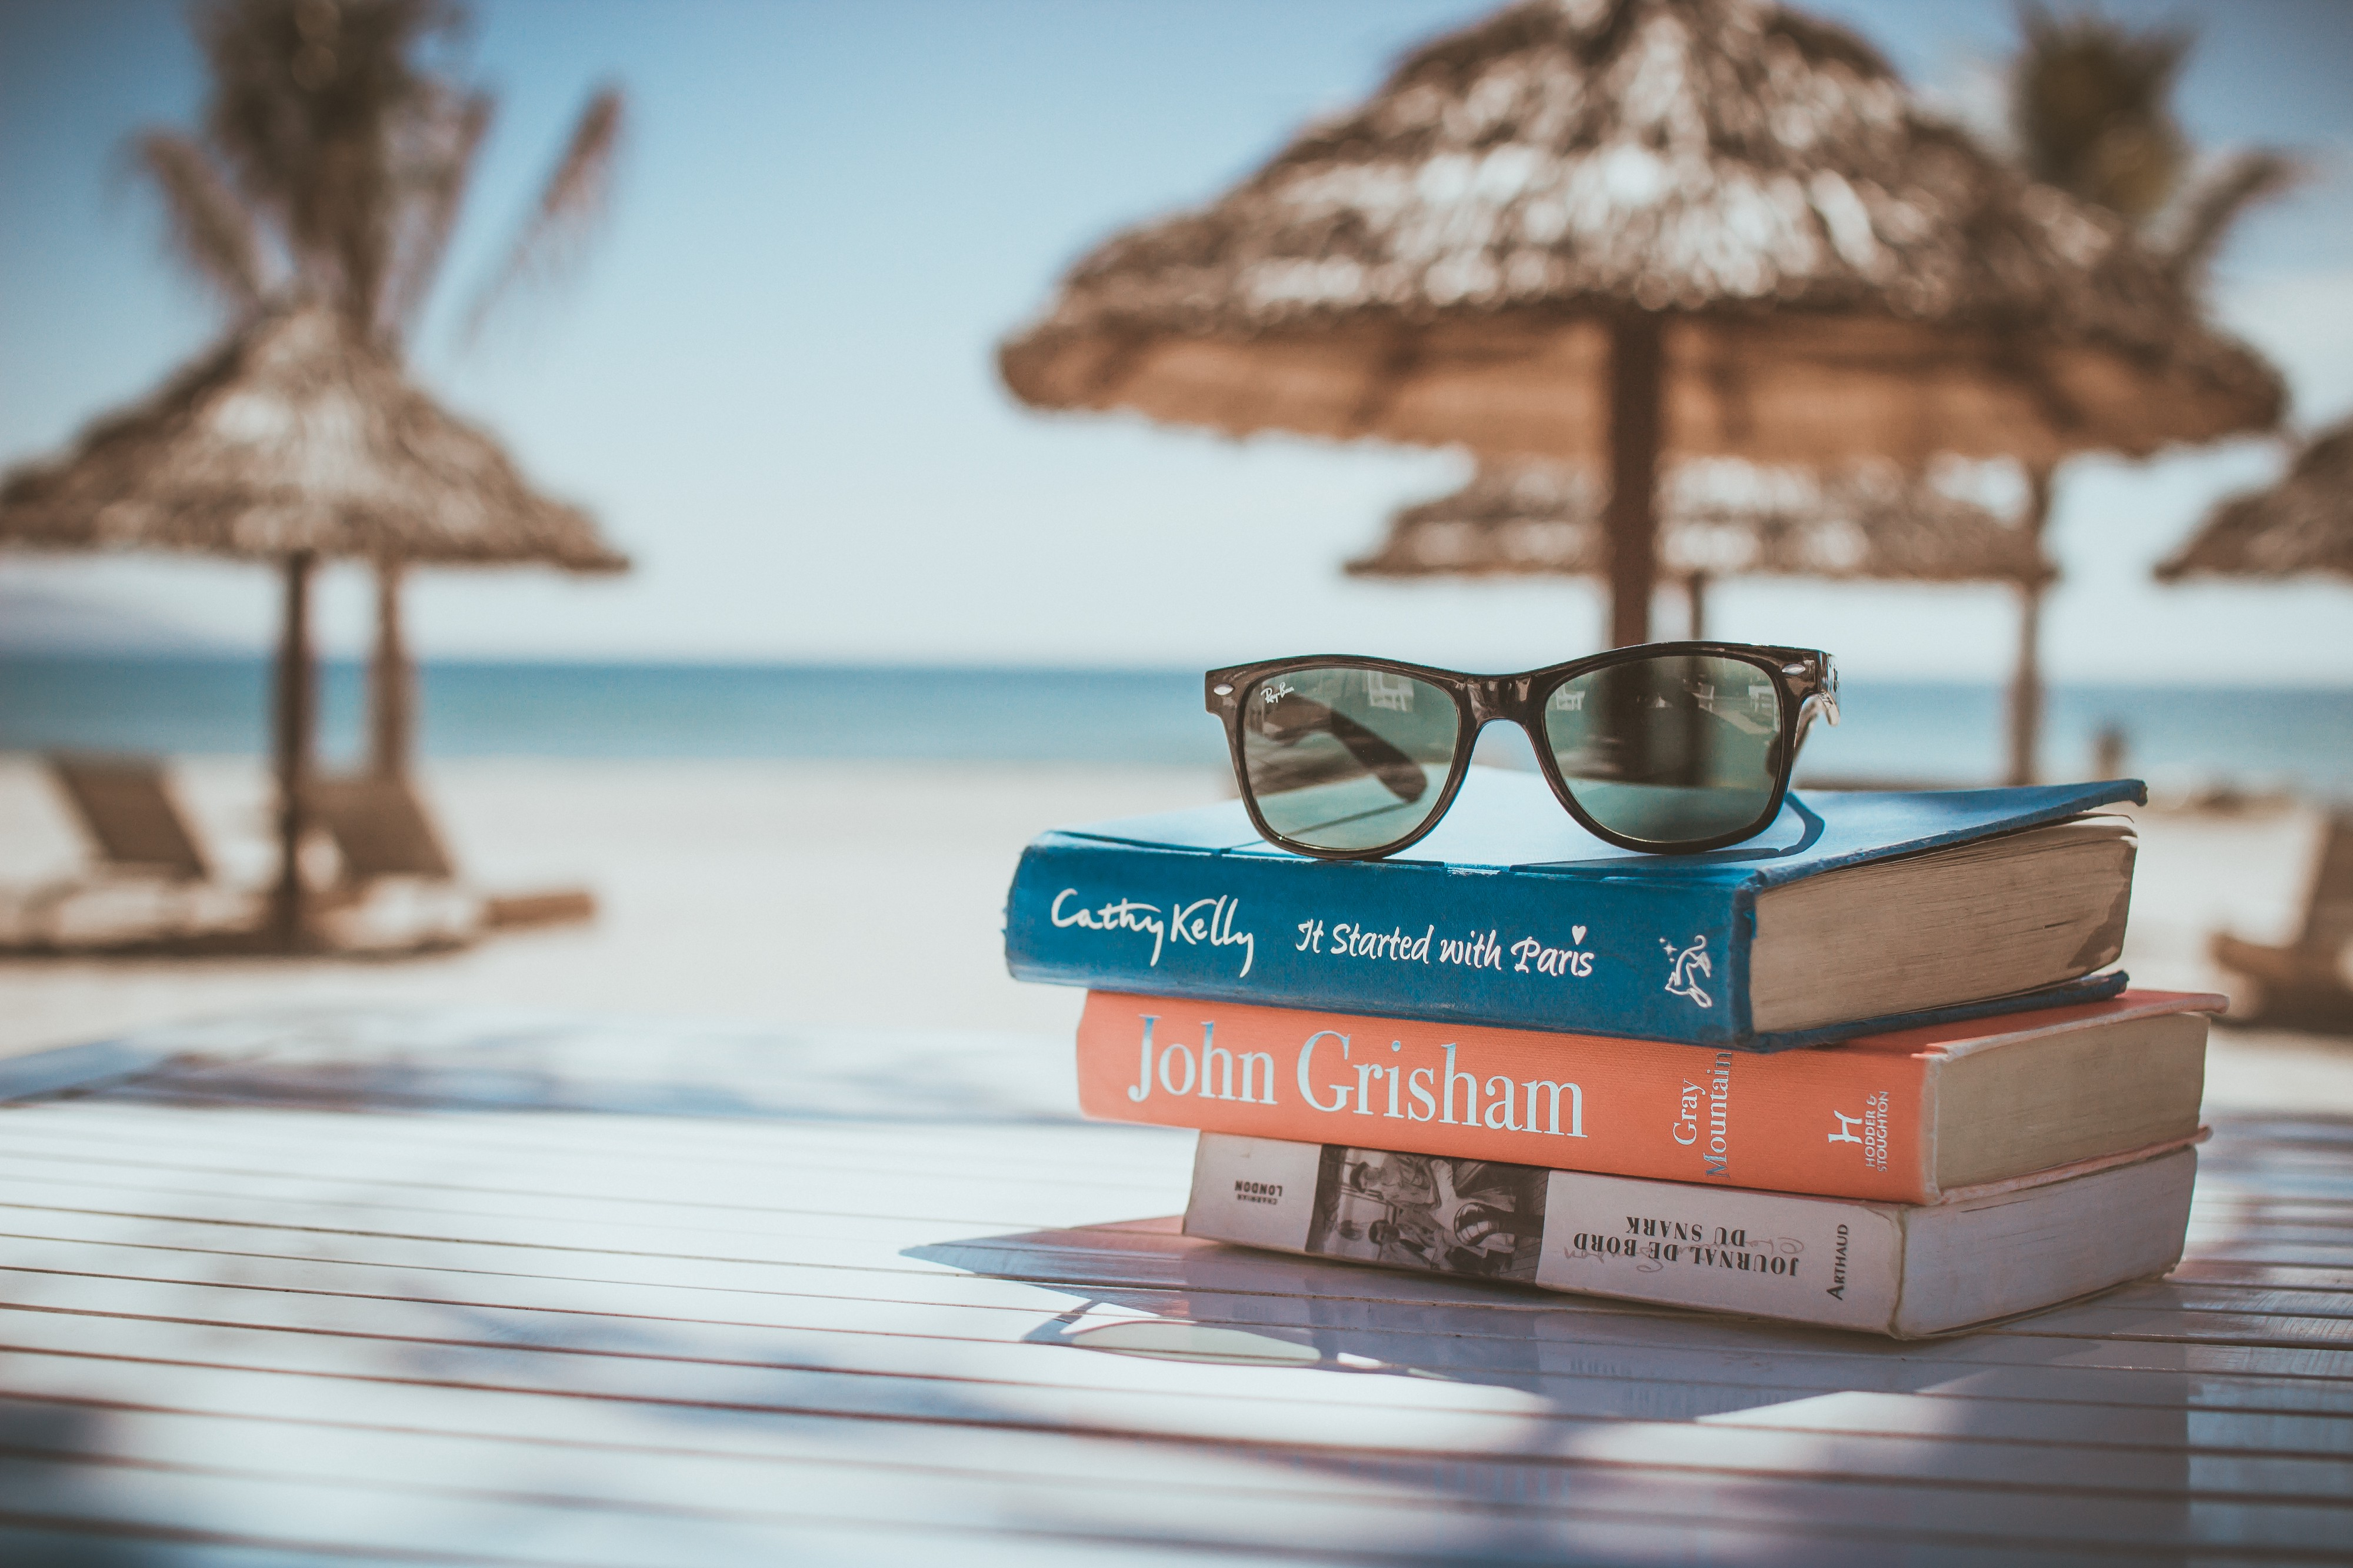 stack of books on beach with sunglasses and beach umbrella